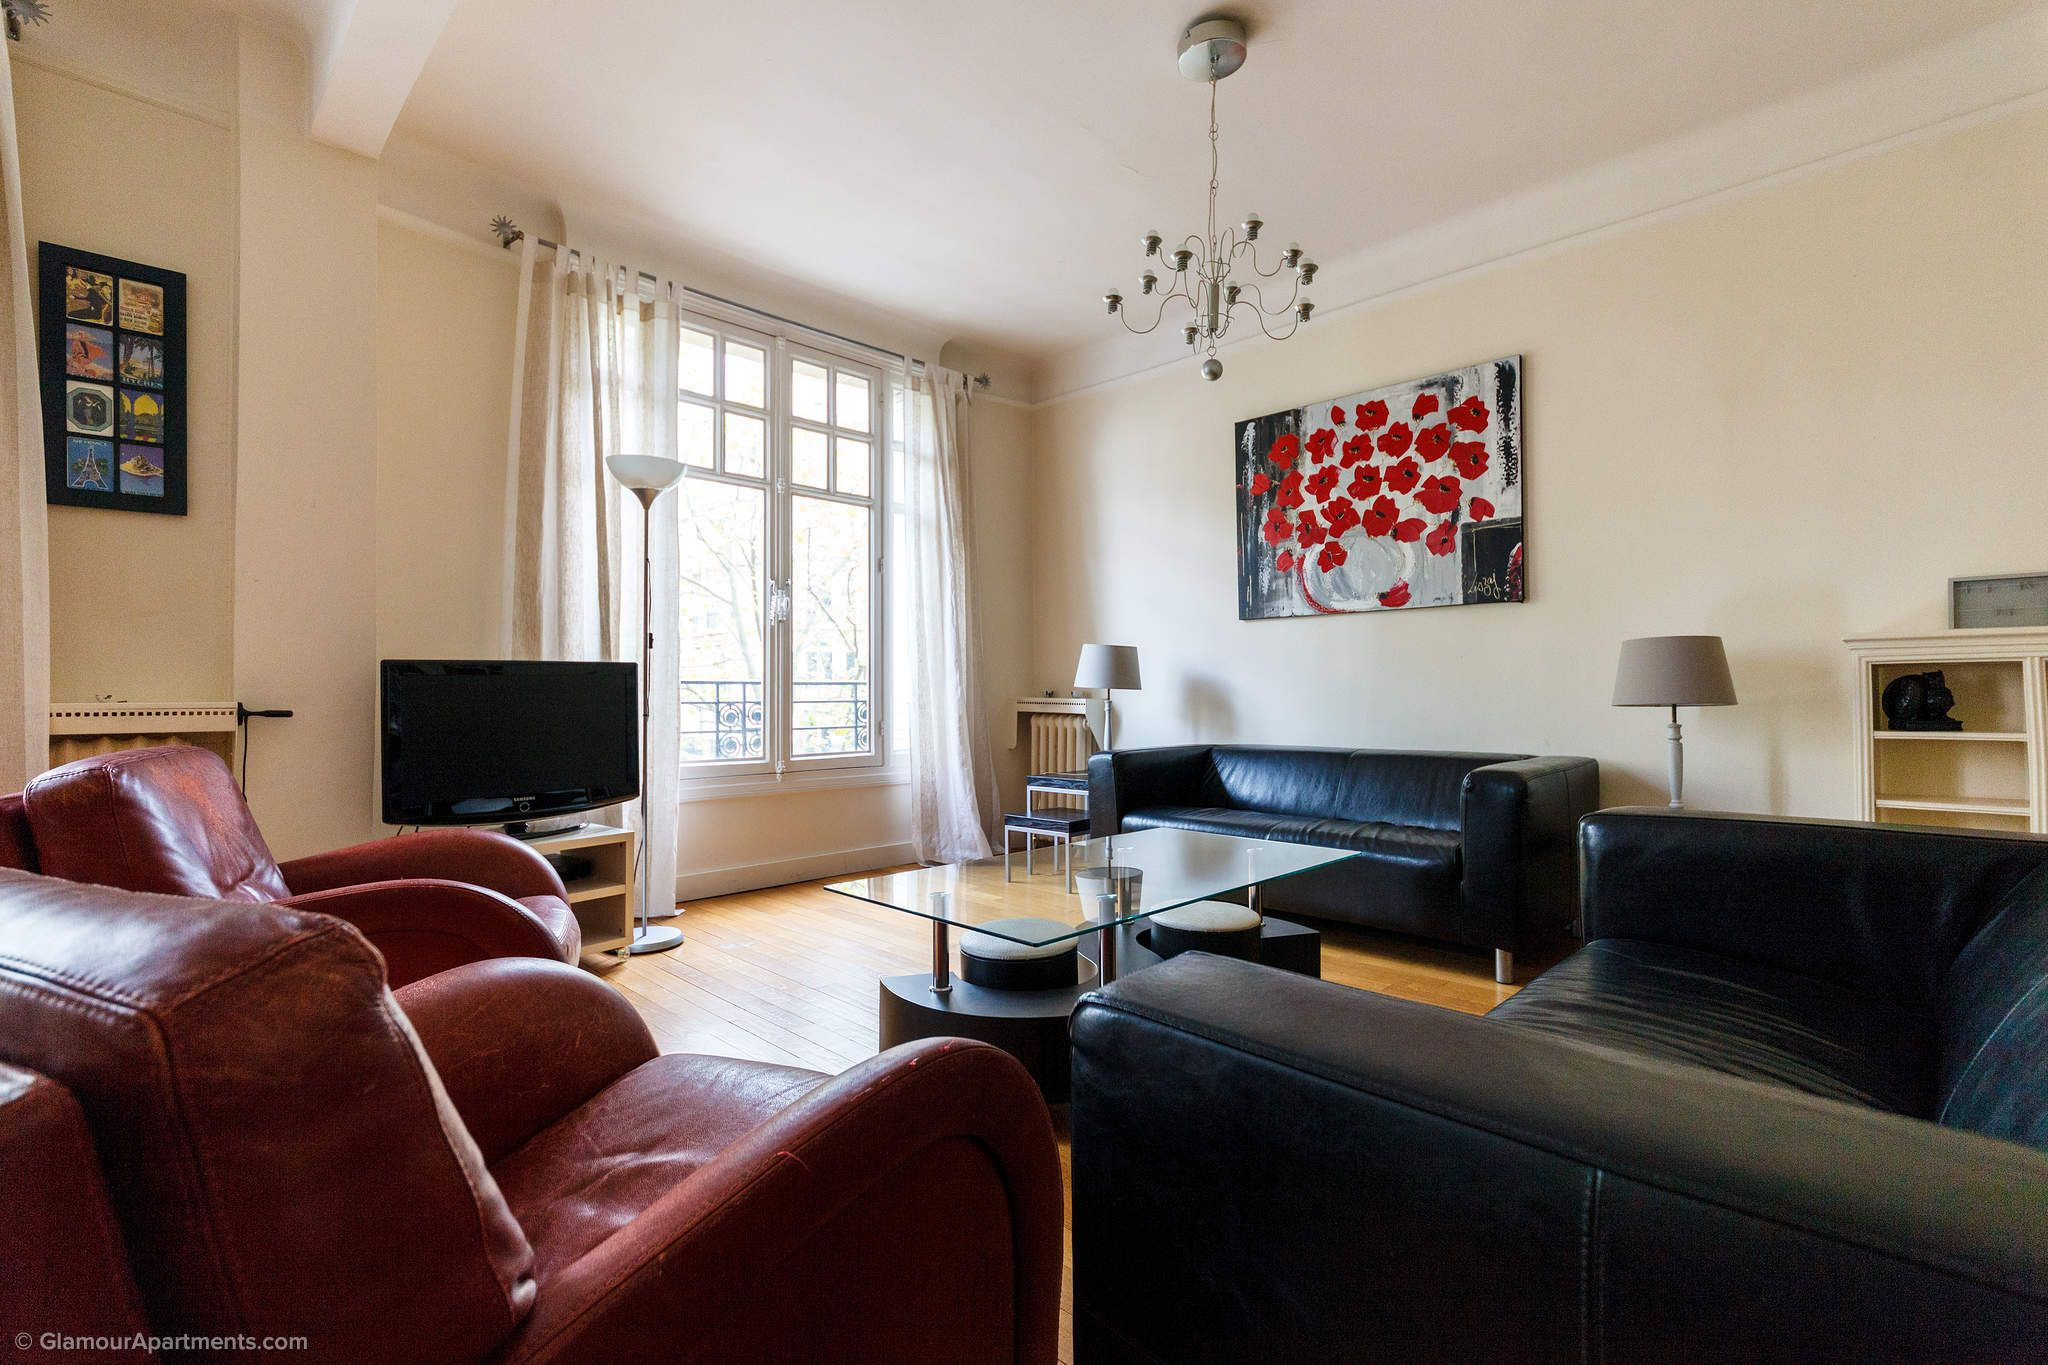 Awesome Spacious Apartment For Long Term Rent On Avenue De La Motte Picquet In The  District Of Paris. Comfortable Spacious Flat For A Family Residence In A  Good ...